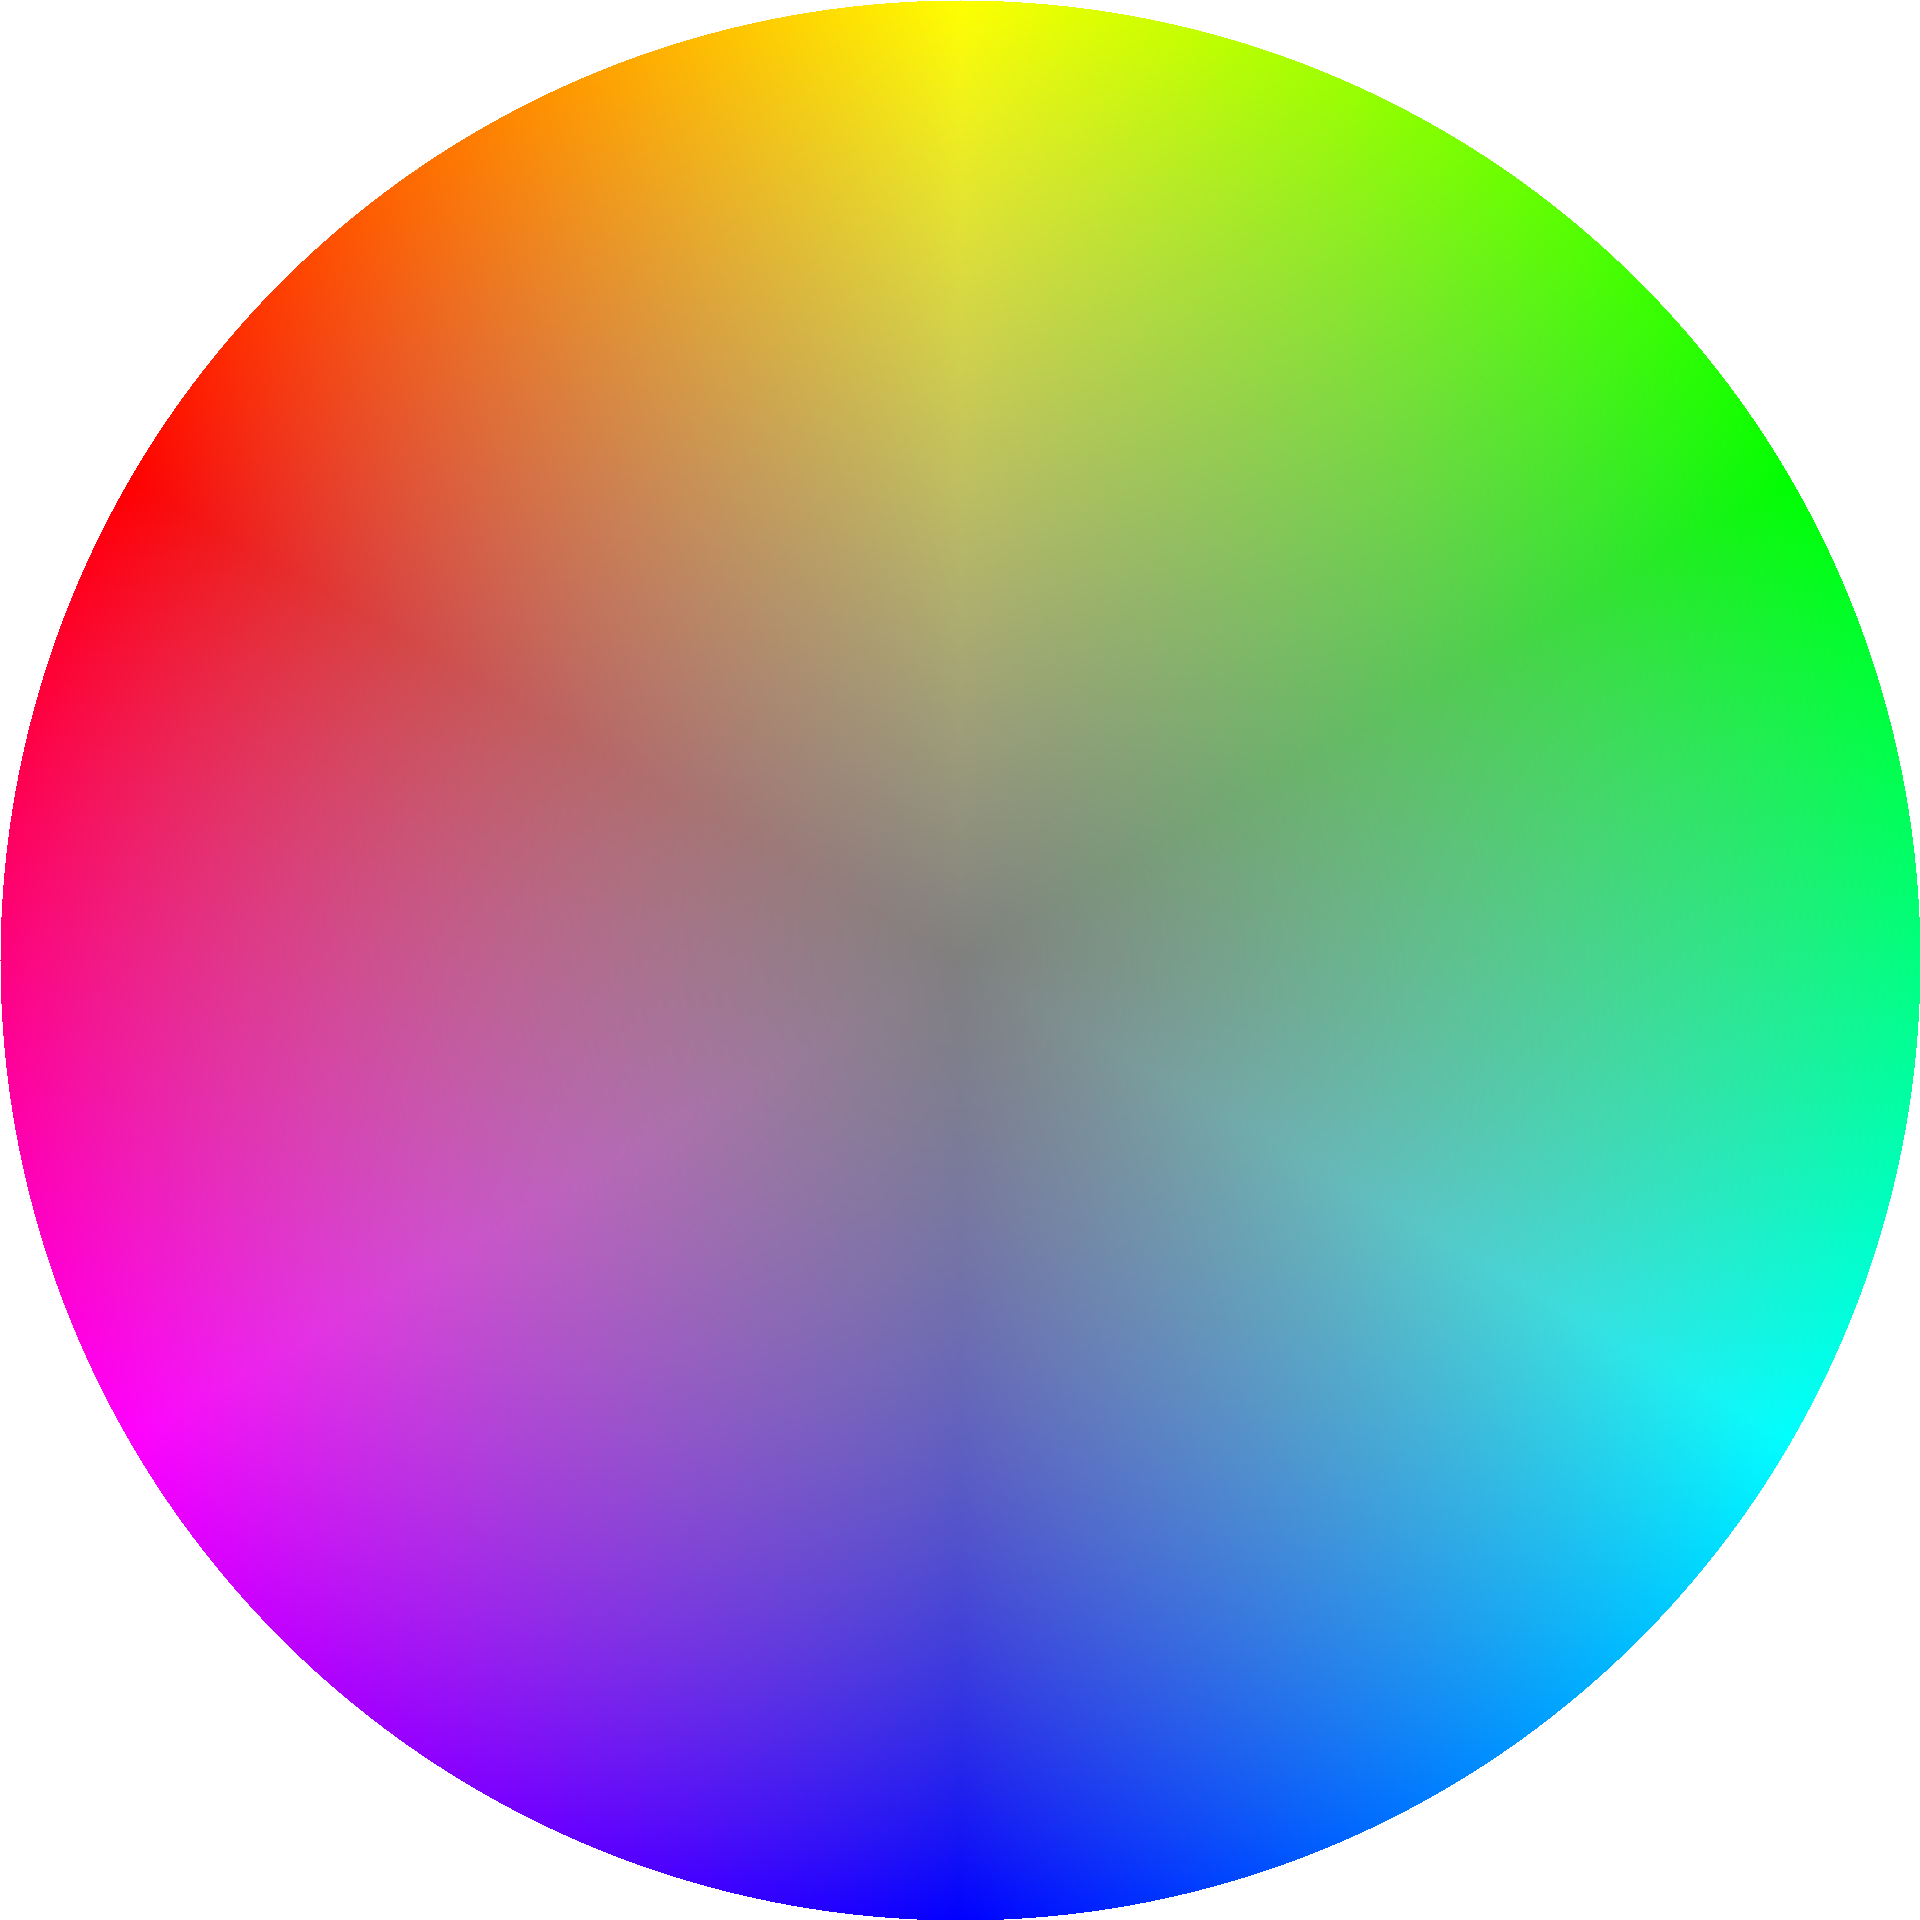 Where Can I Find An Image Of A Color Wheel With The Fully Saturated